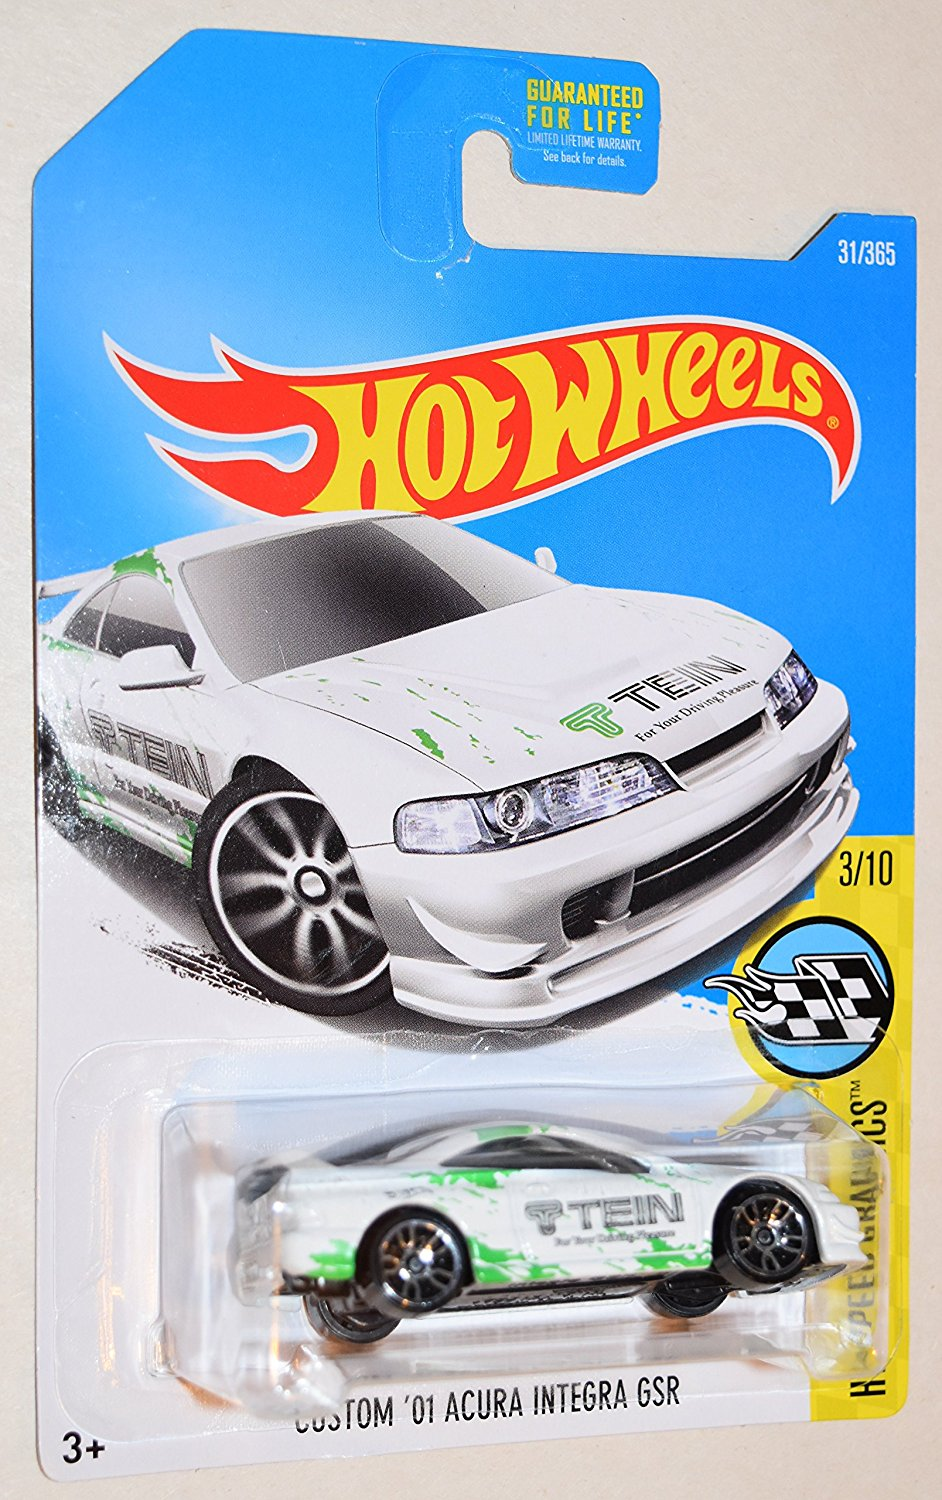 Hot Wheels Custom 01 Acura Integra Gsr 1 64 Diecast Car Toys Hobbies Contemporary Manufacture